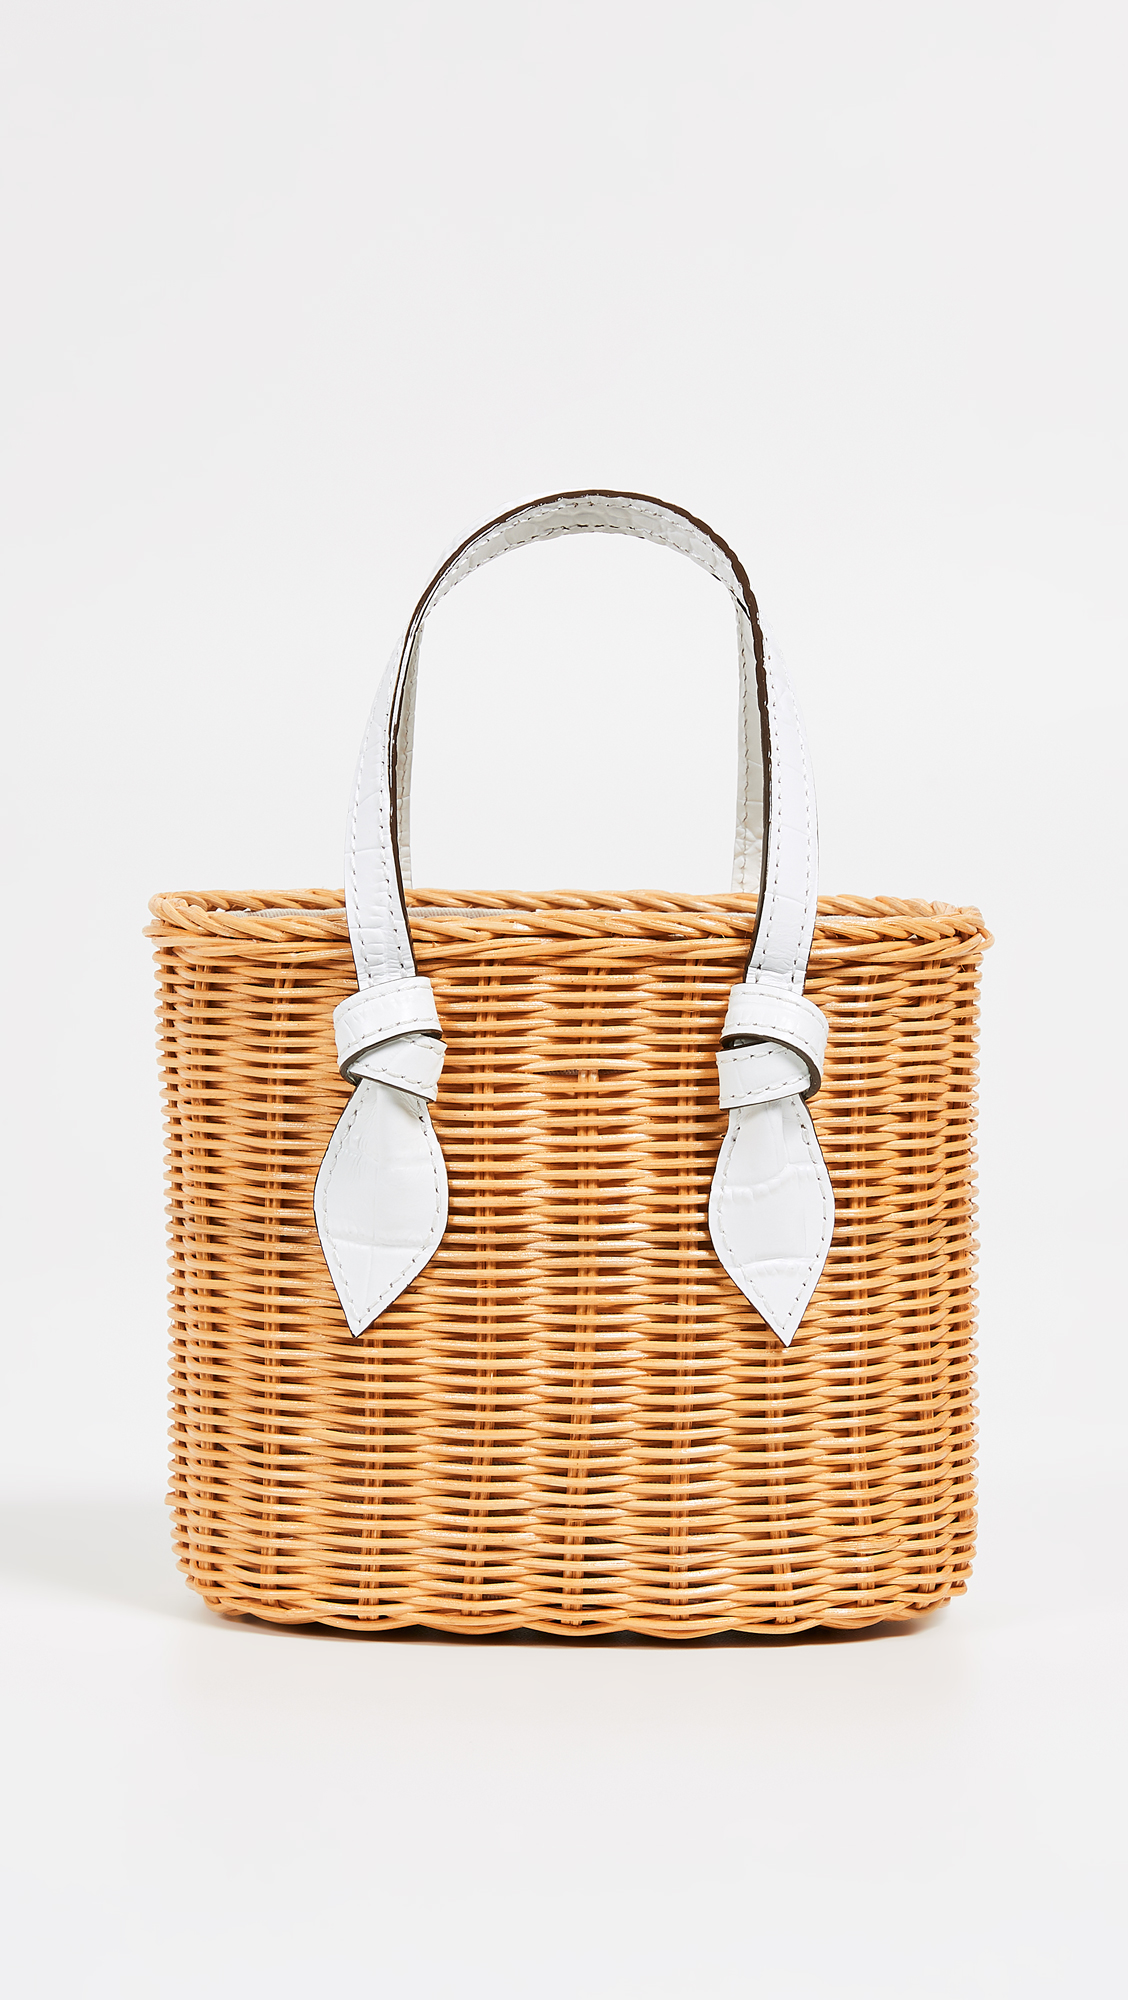 Wicker Bag with Leather Handles